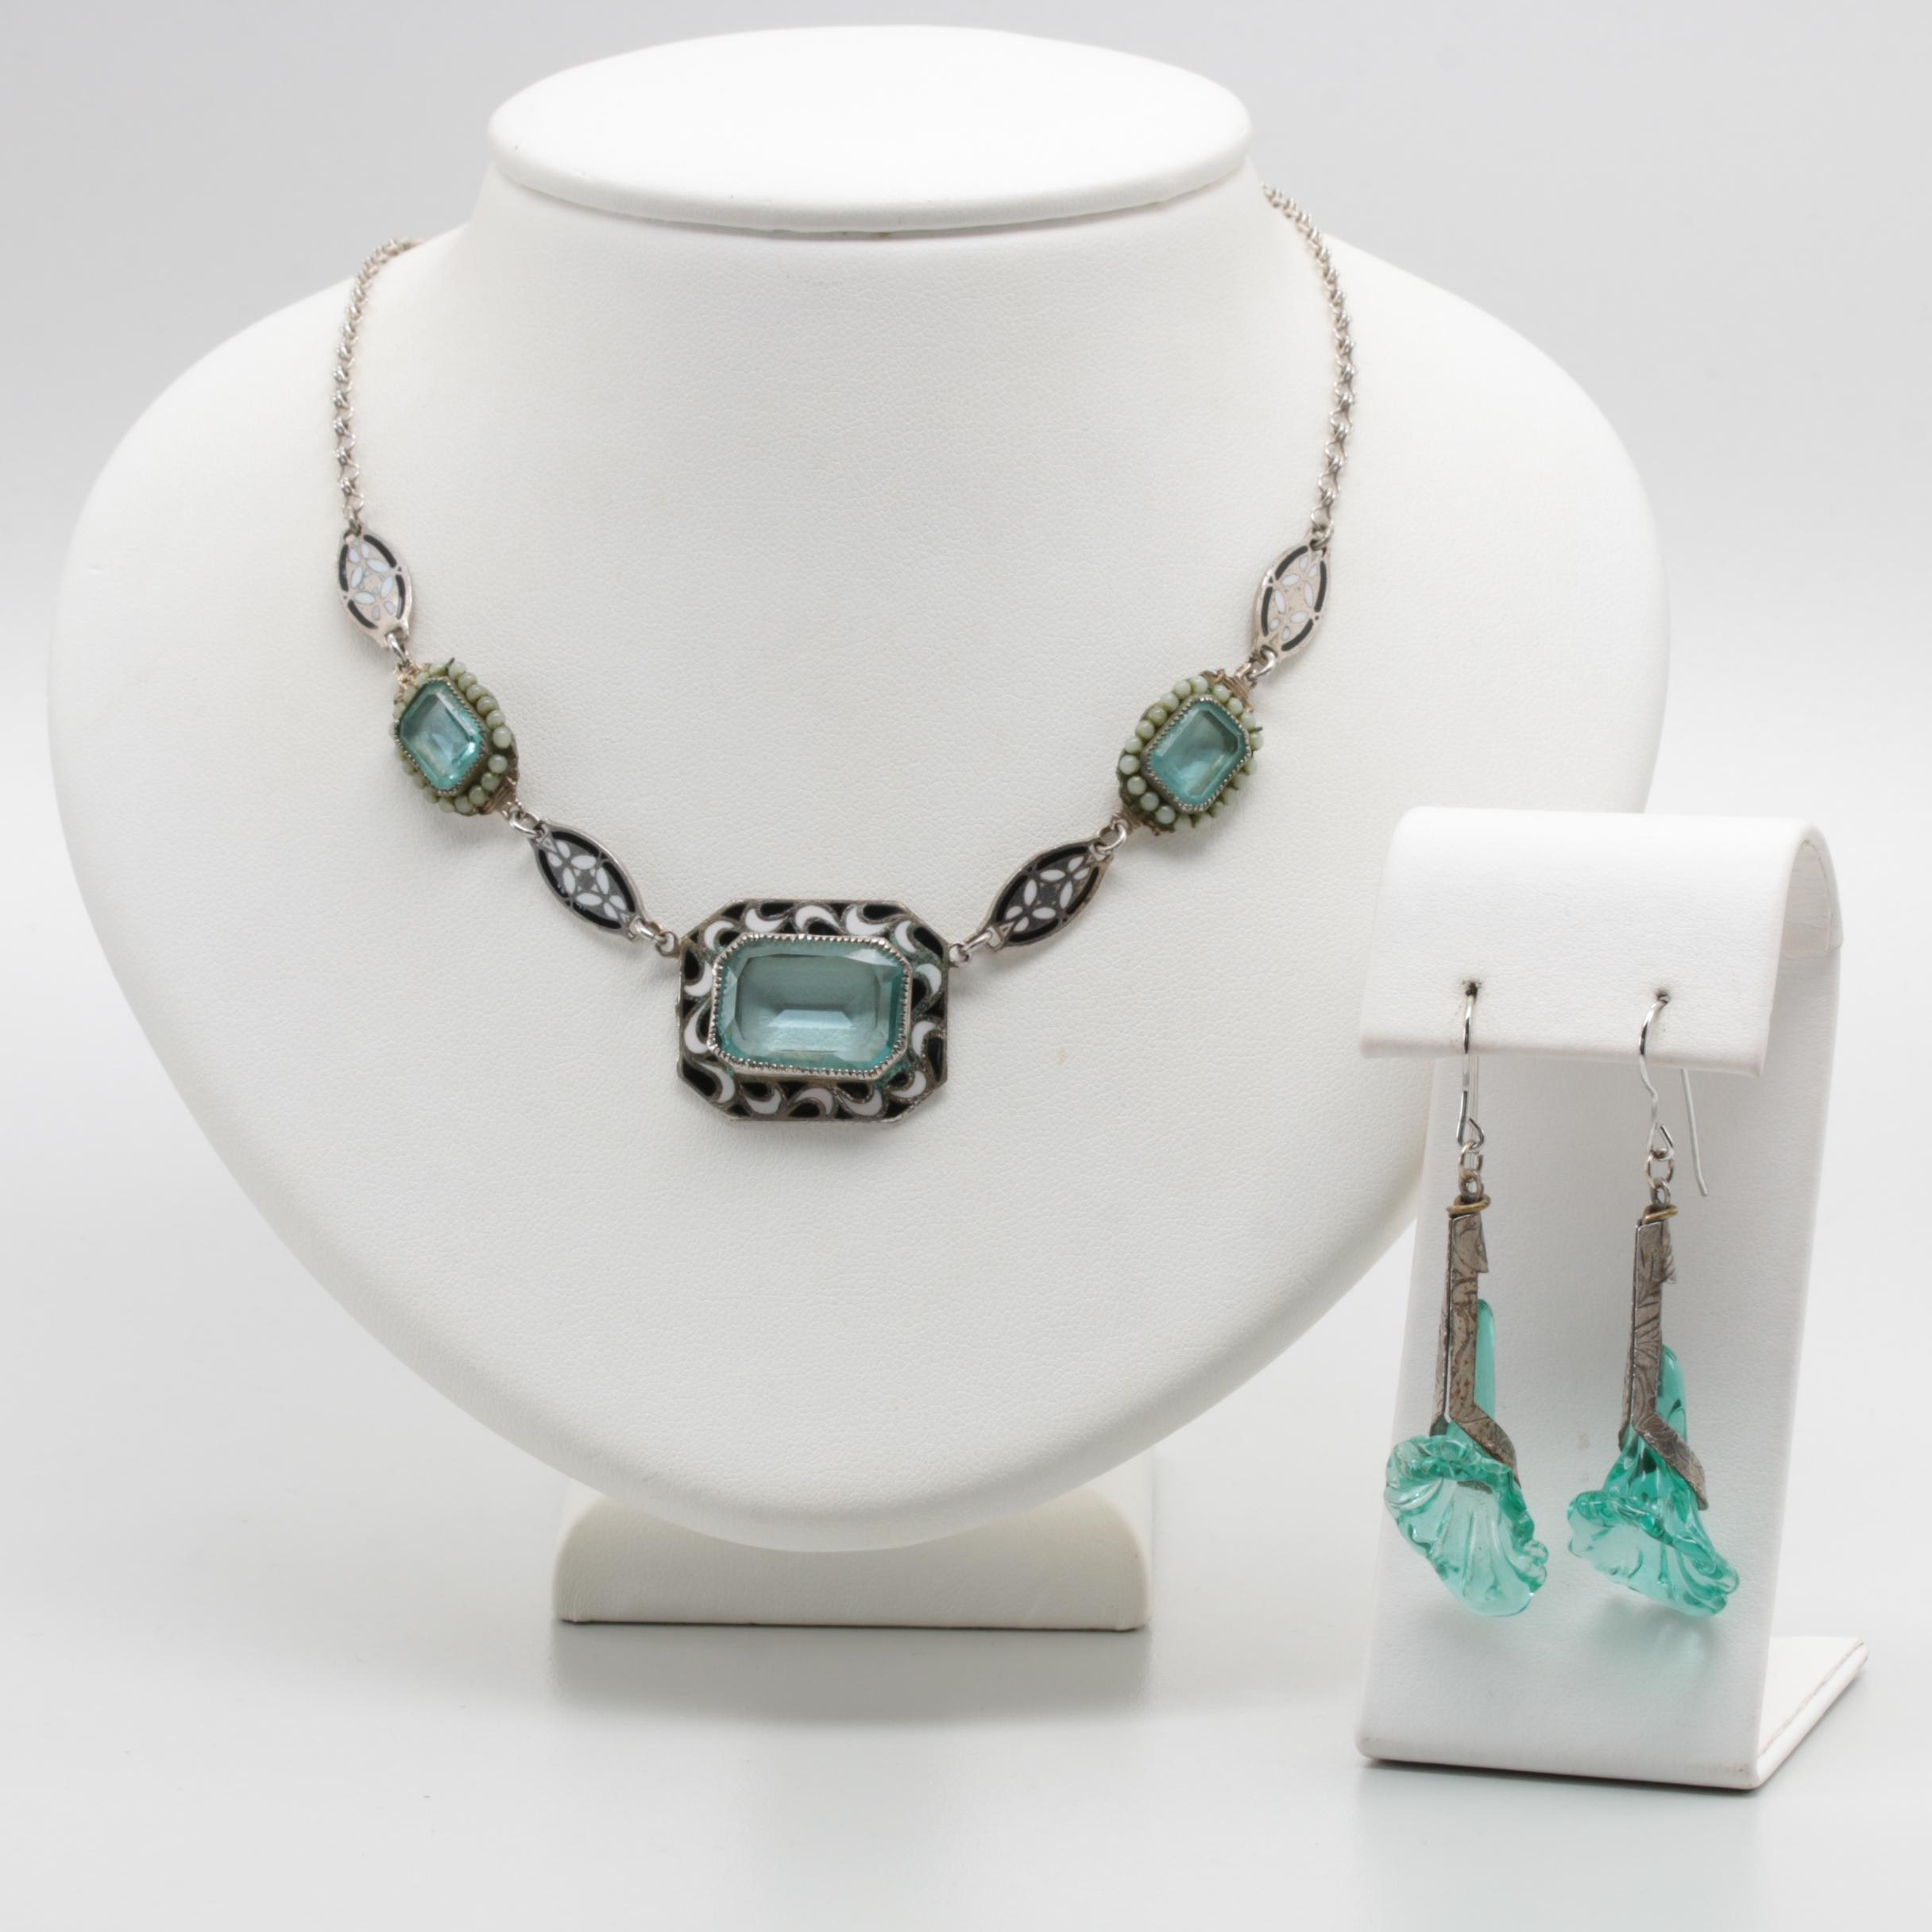 Art Deco Silver Tone Glass and Enamel Necklace and Earrings